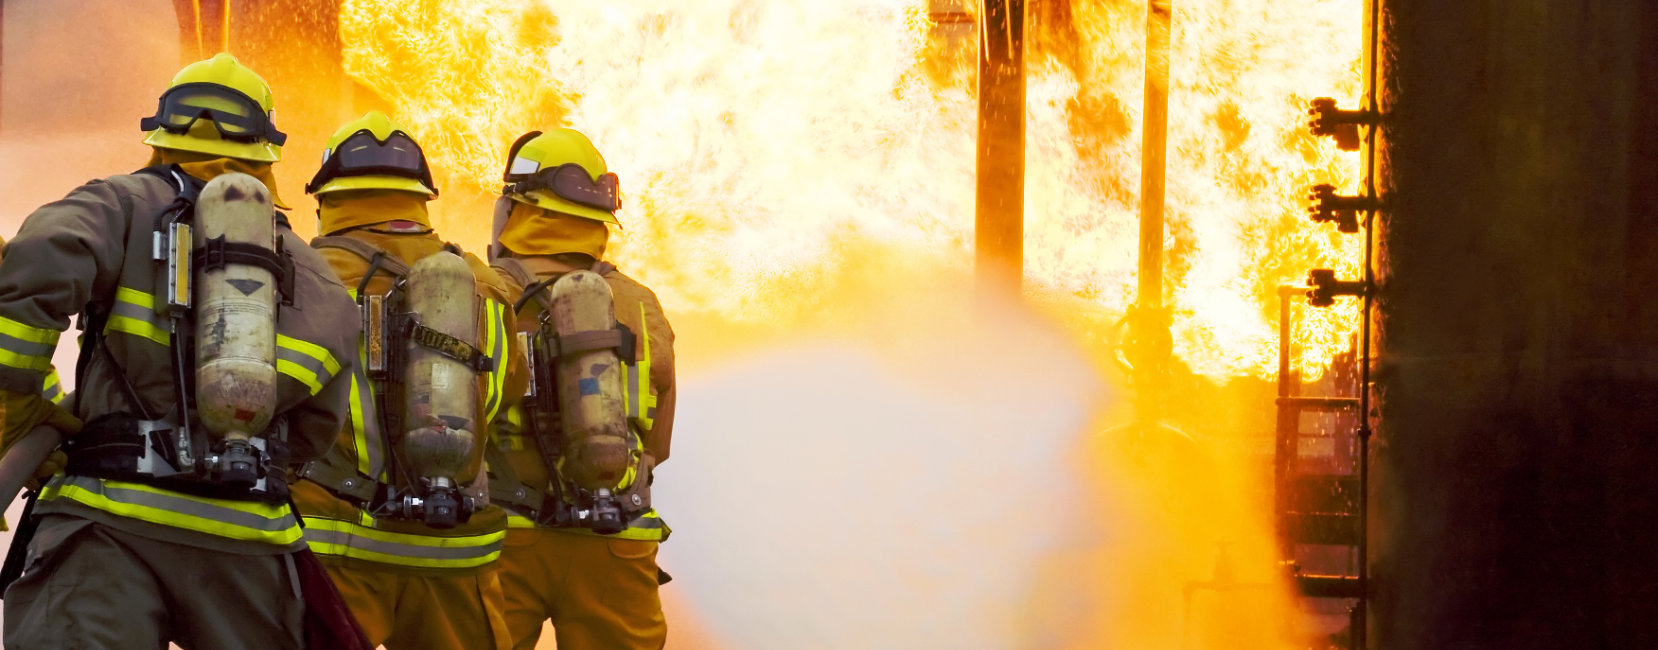 Fire marshal training for the workplace via e-learning